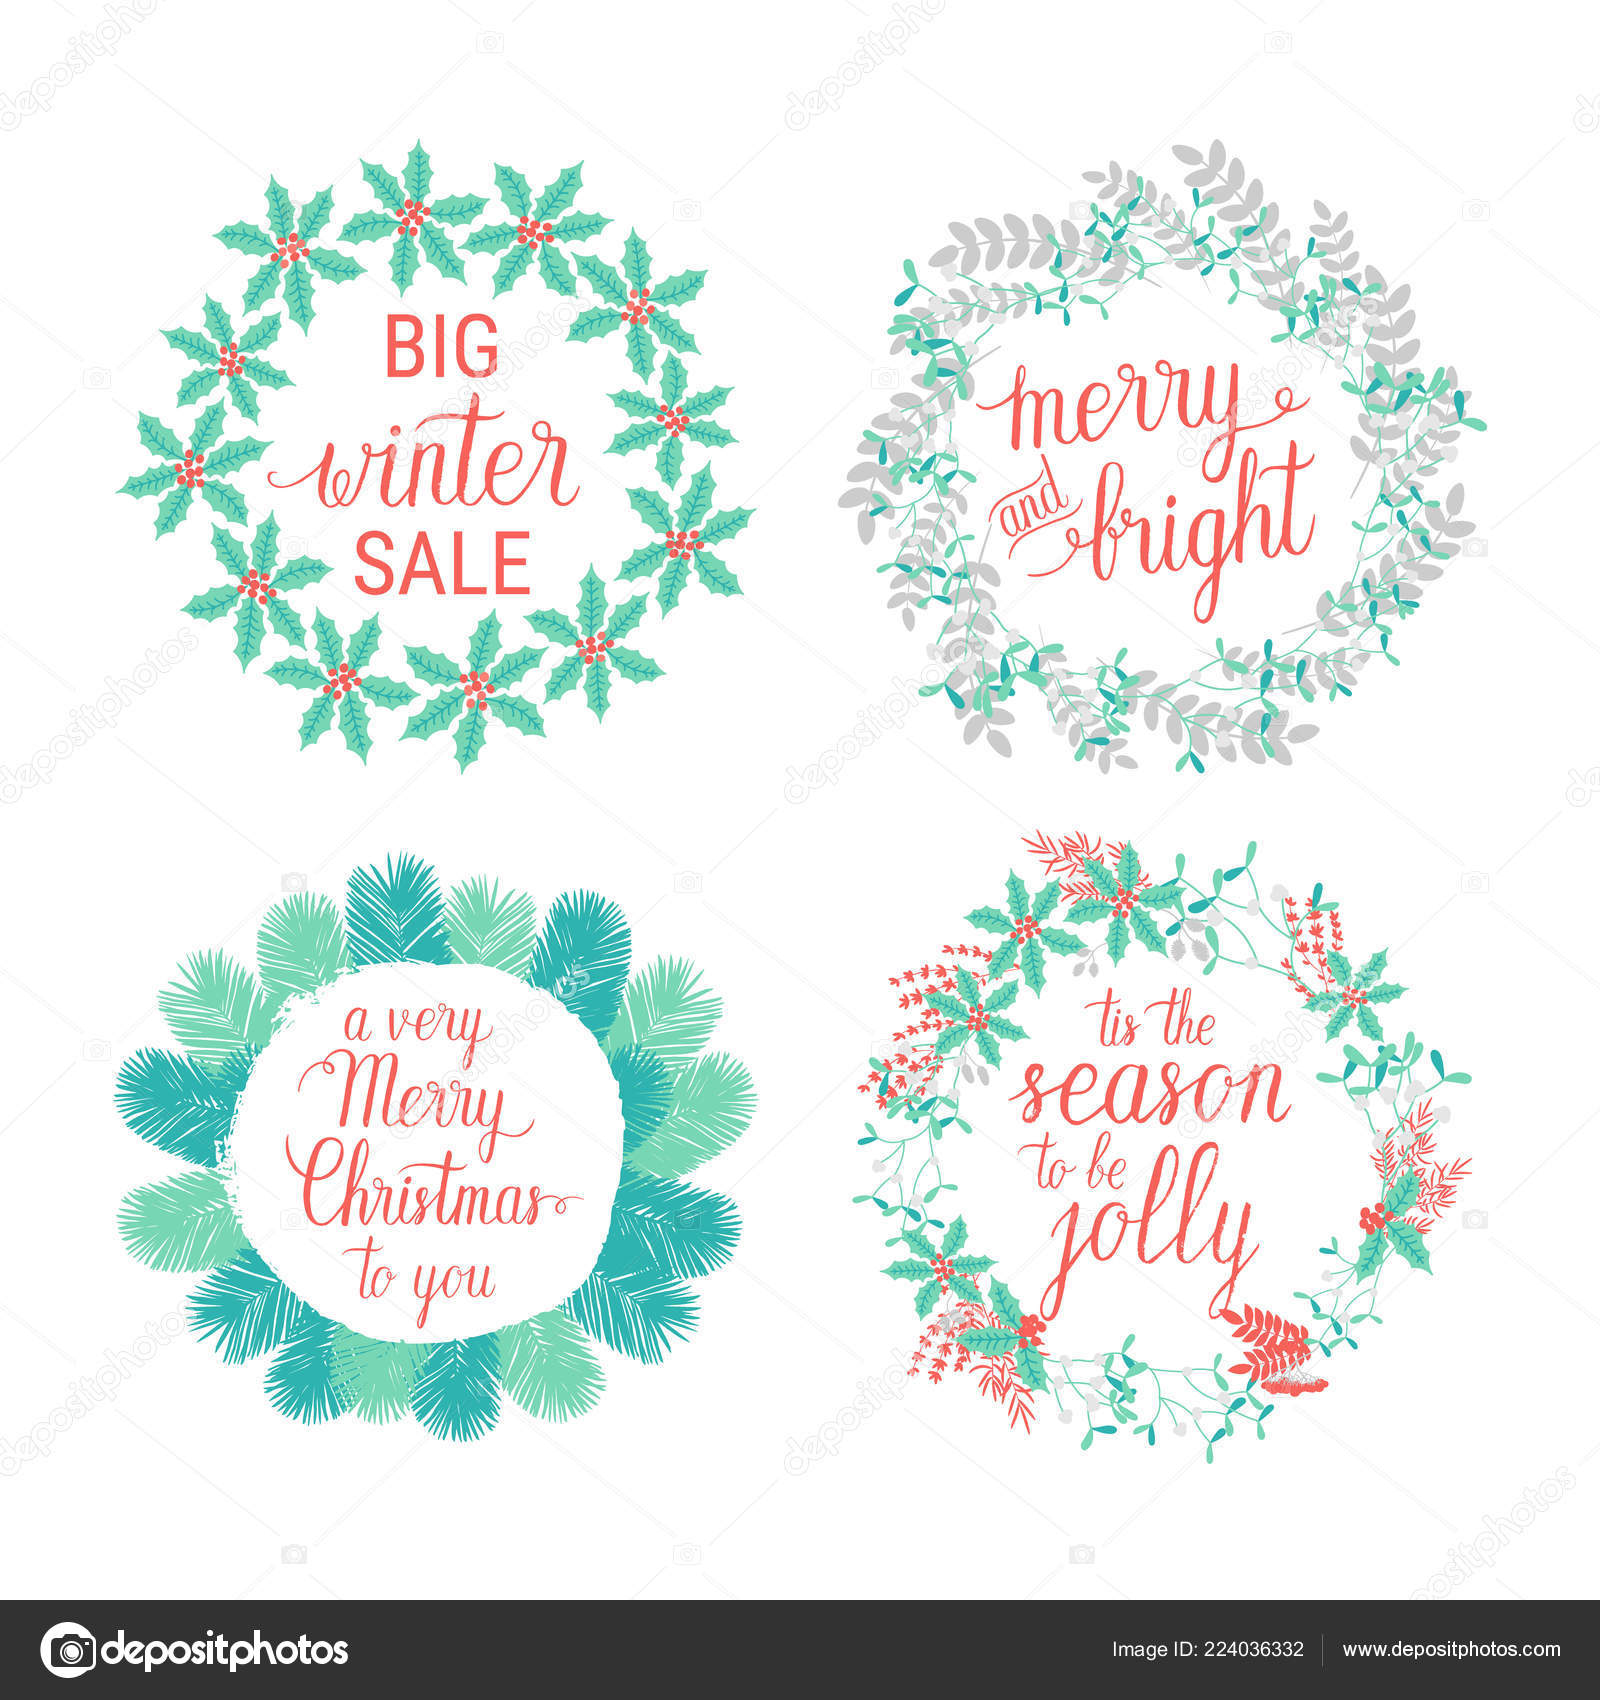 merry and bright happy holidays happy new year tis the season to be jolly greeting cards set vector winter holidays wreaths with hand lettering